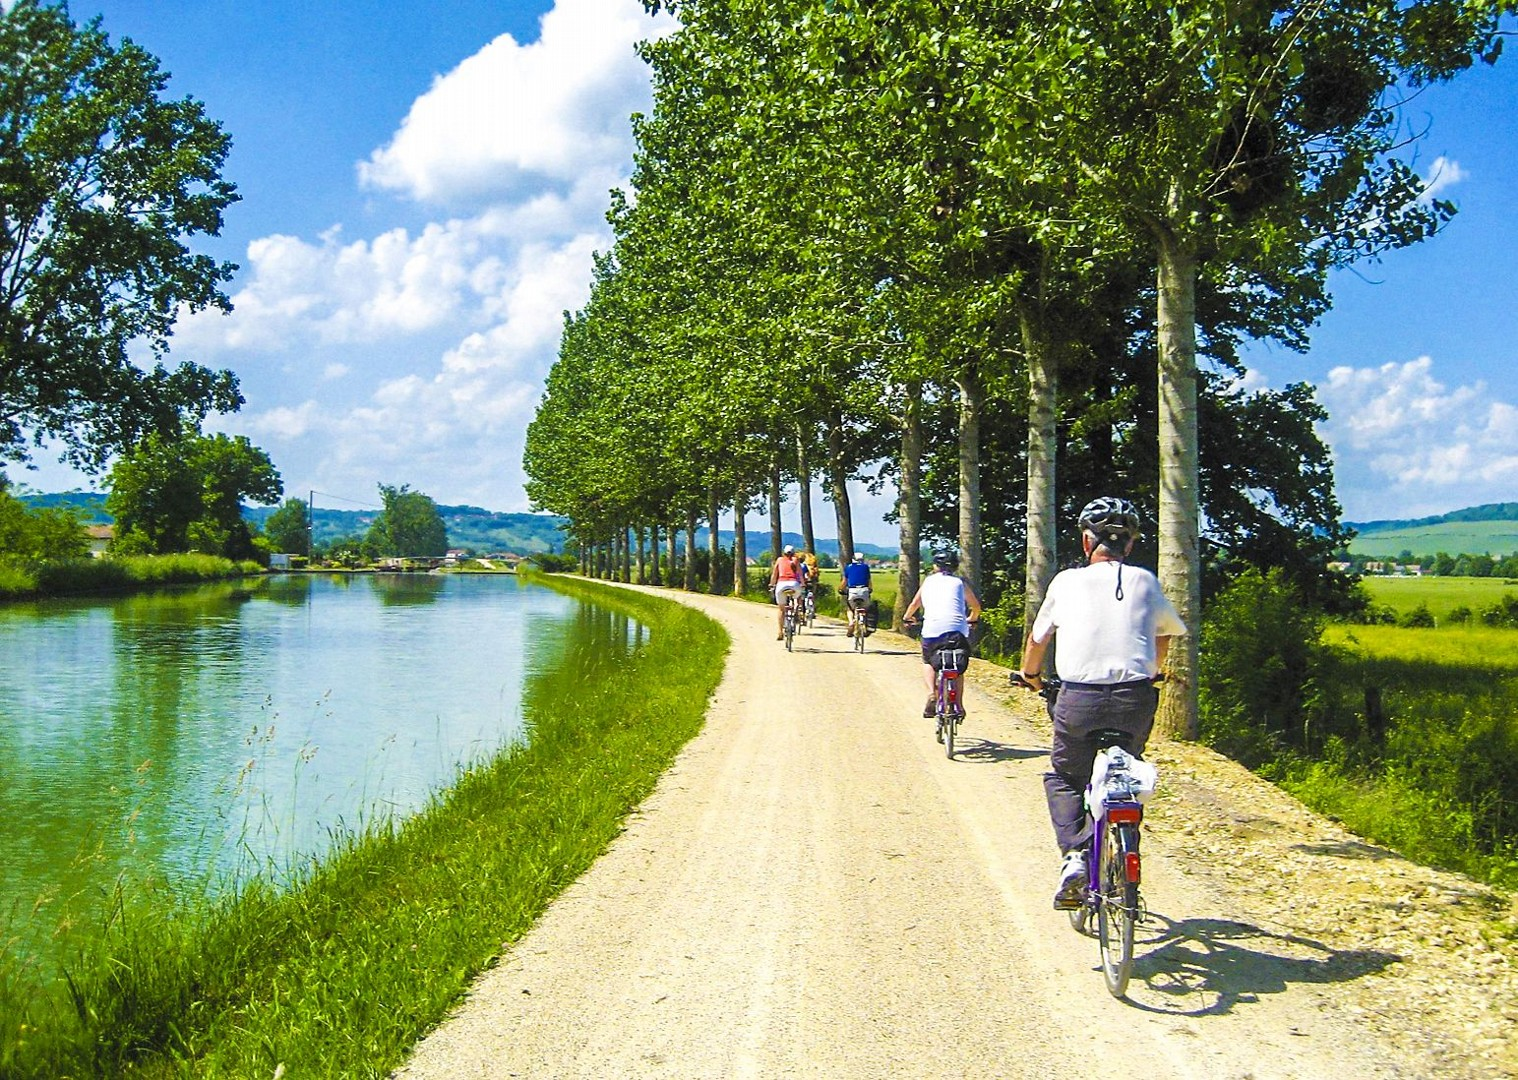 skedaddle-french-cycling-holiday-for-all-ages-family-friends-self-guided.jpg - France - Burgundy - Caves and Canals - Self-Guided Leisure Cycling Holiday - Leisure Cycling